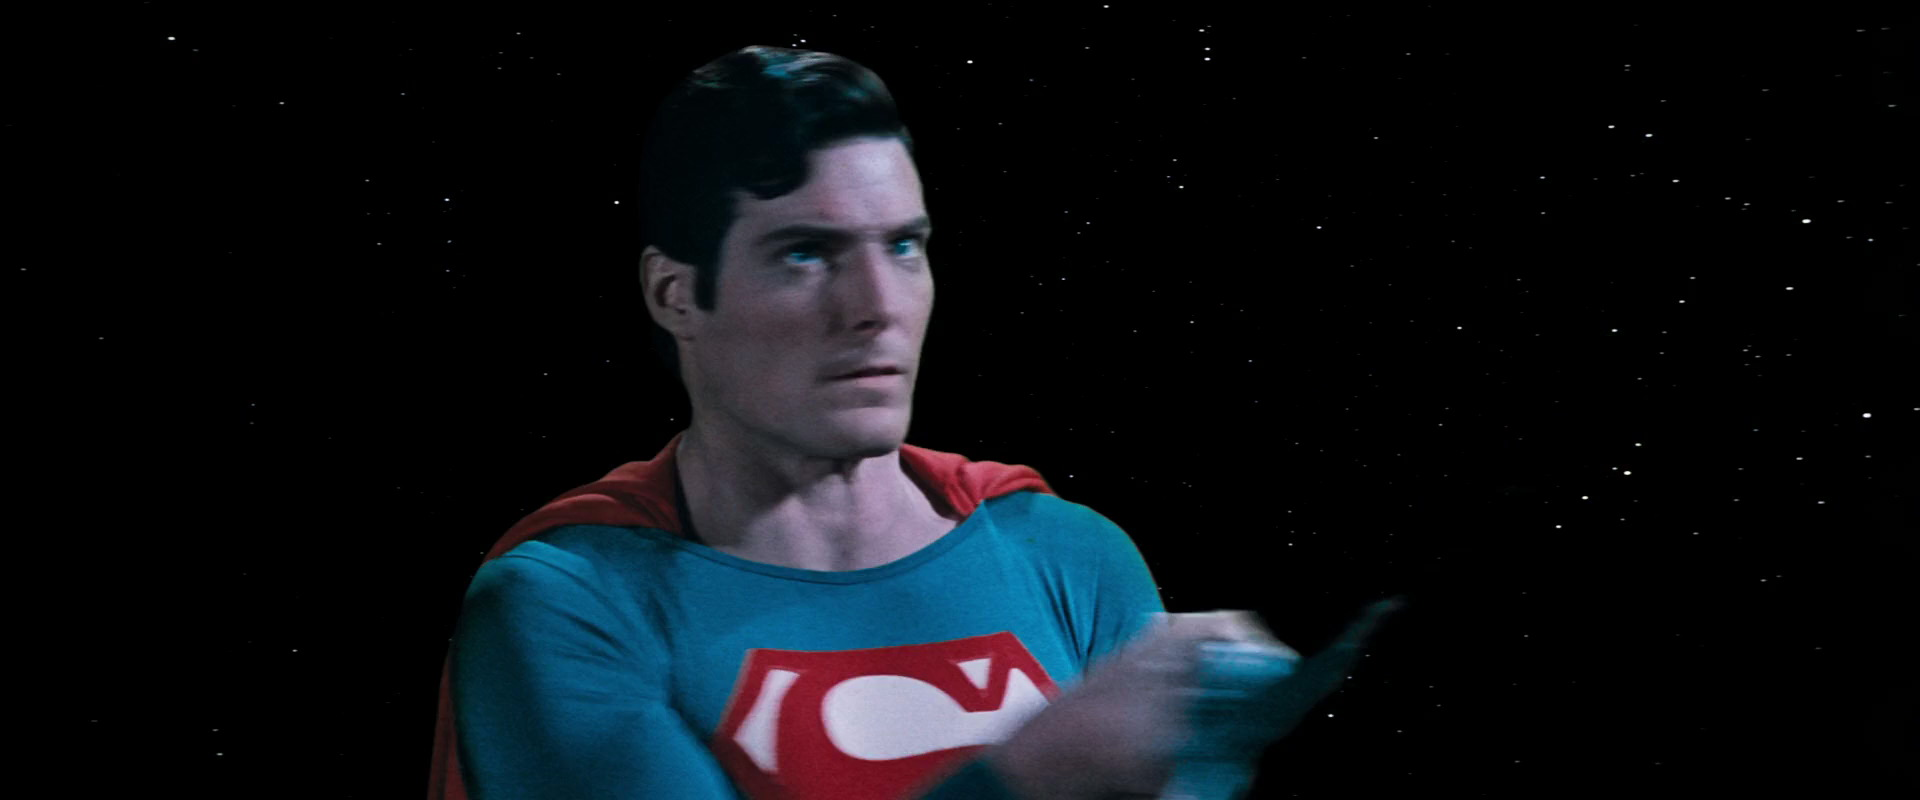 superman4-movie-screencaps.com-3917.jpg